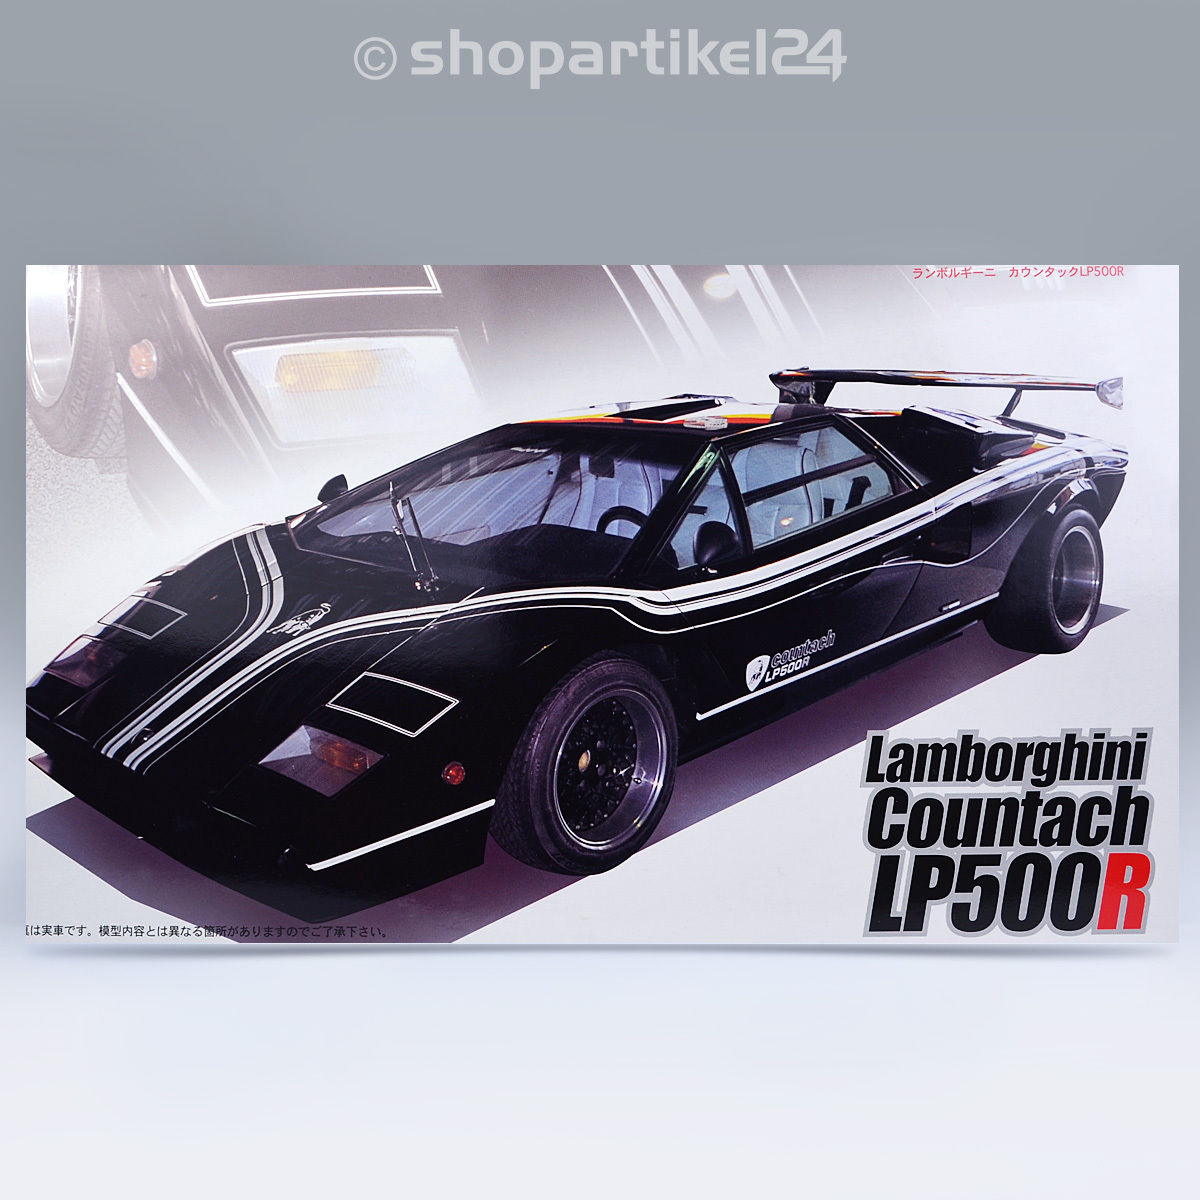 lamborghini countach lp500r fujimi 121819. Black Bedroom Furniture Sets. Home Design Ideas